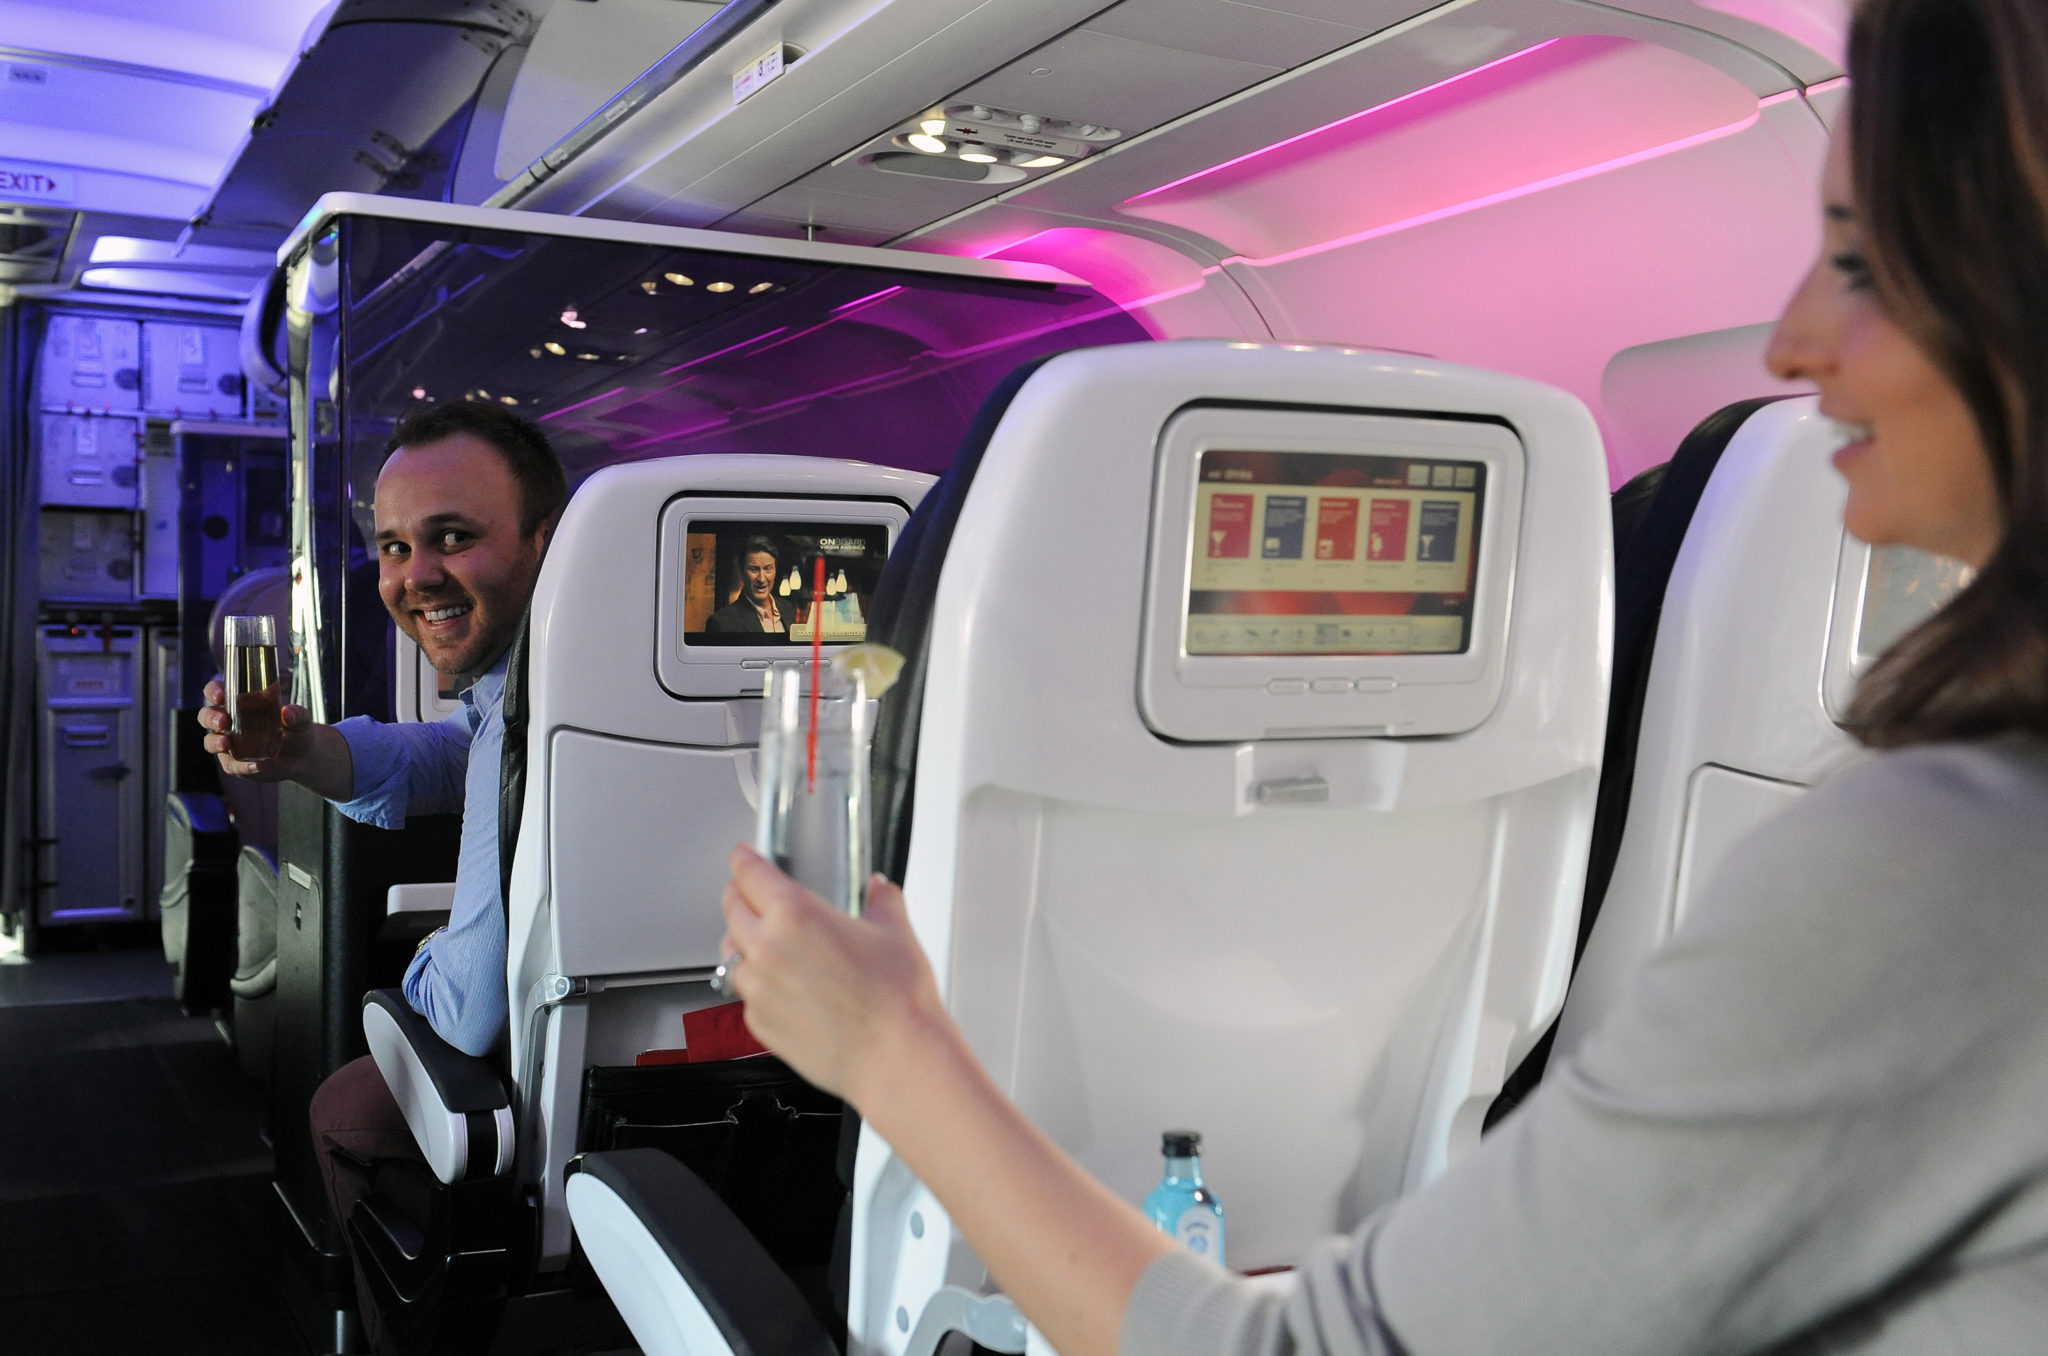 Virgin America passengers delighted by the #PaxEx experience they were offered on course to Honolulu, including free Mamosas. Image: Virgin America